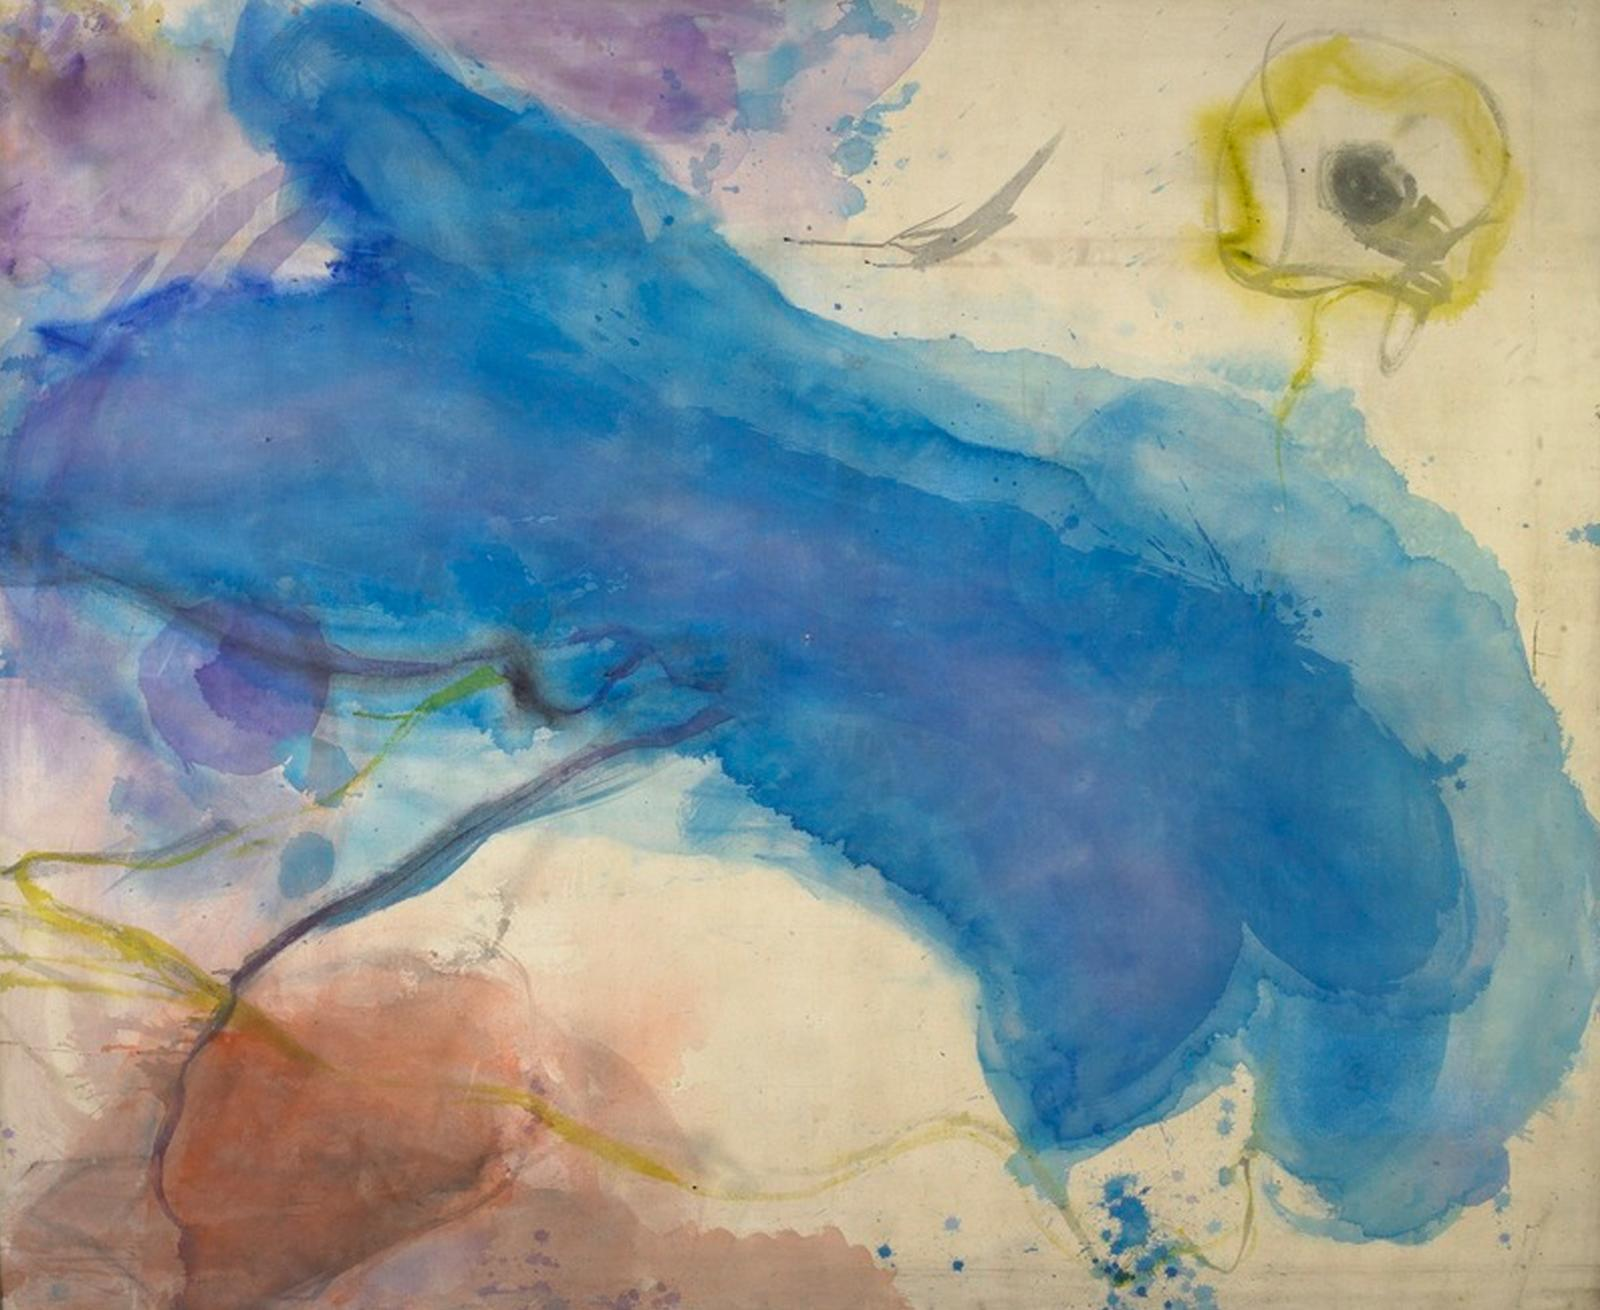 Vivian Springford, Blue Form, 1963